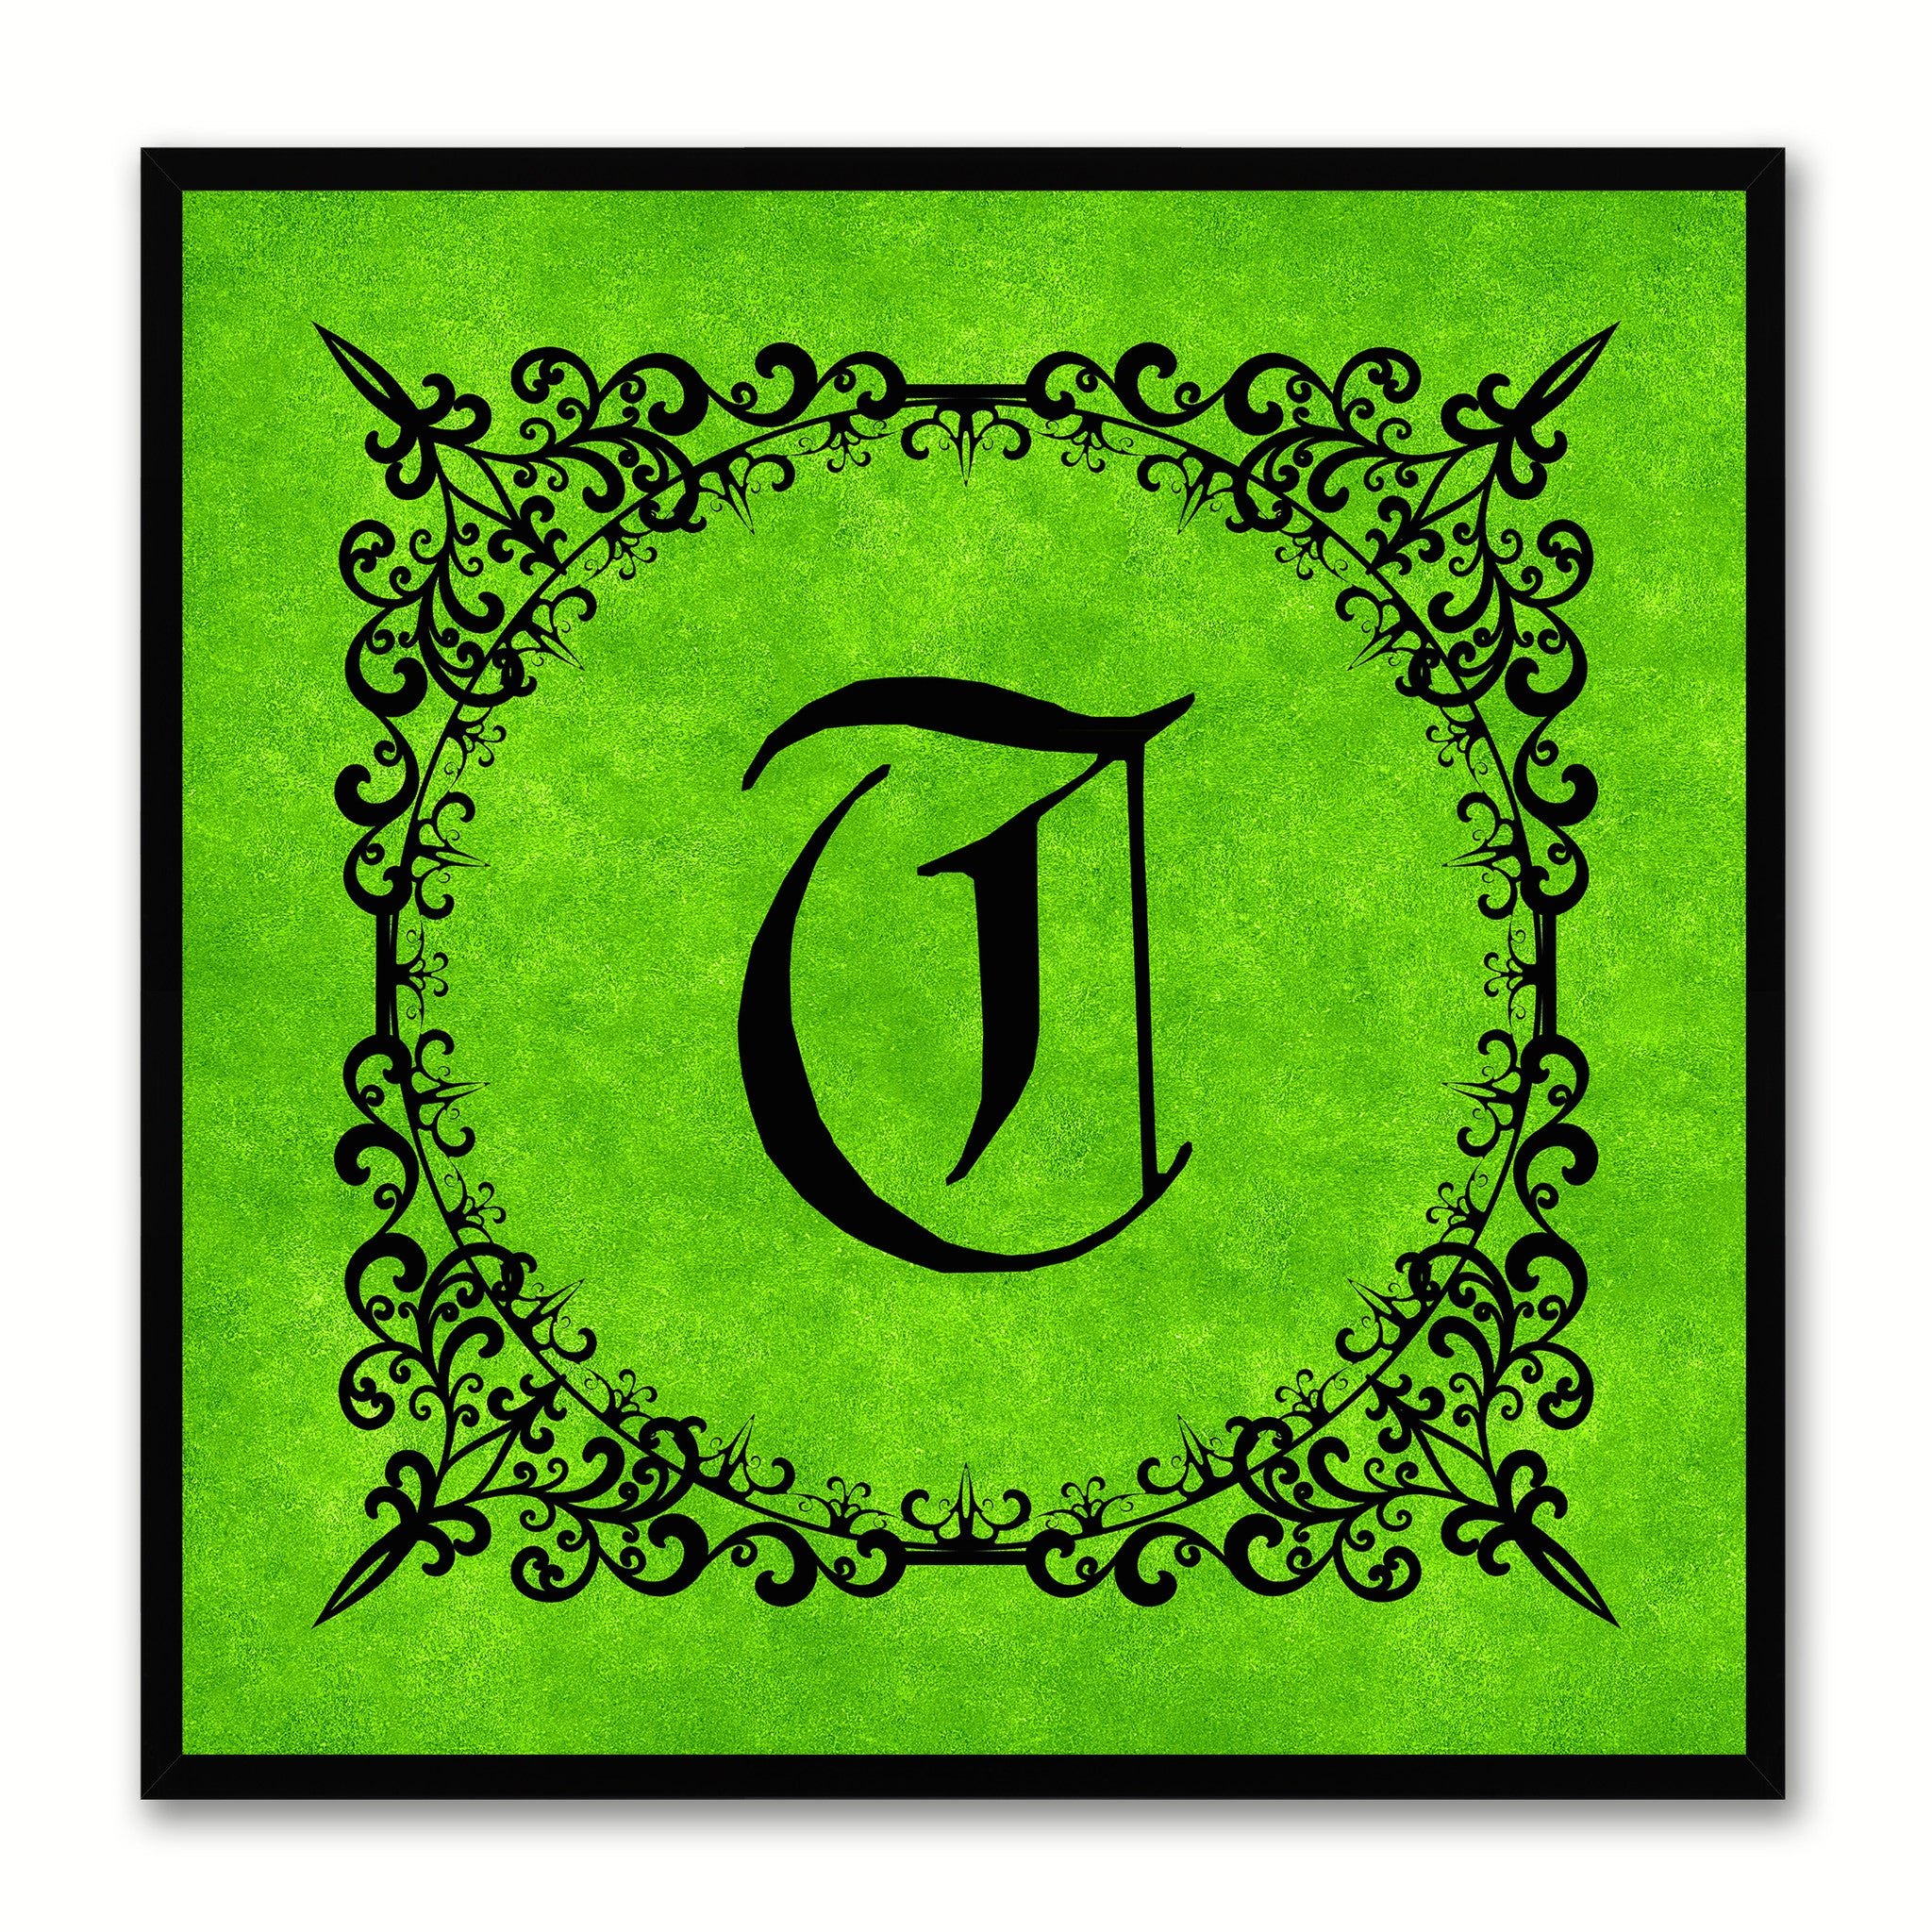 Alphabet T Green Canvas Print Black Frame Kids Bedroom Wall Décor Home Art